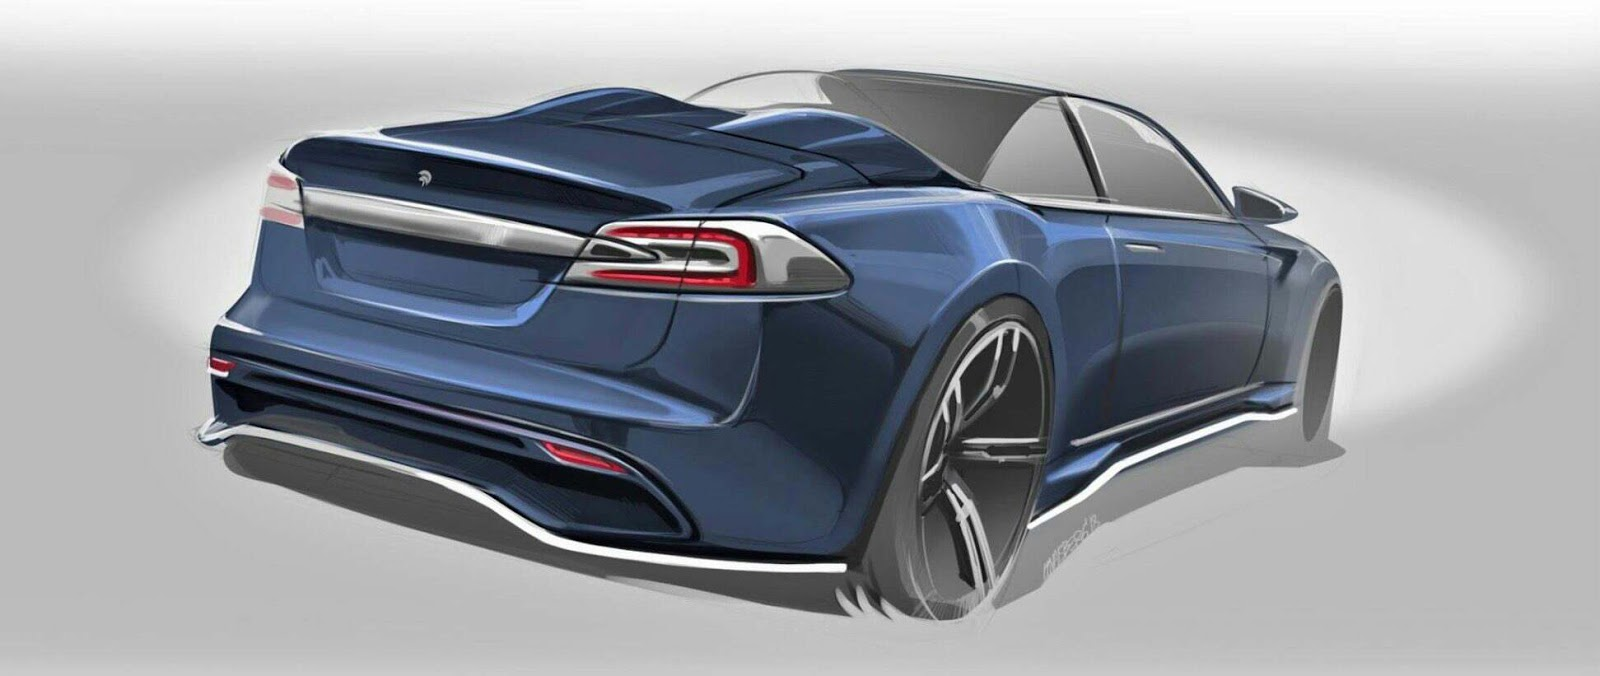 ARES Design made a sketch of a new Roadster Version of Tesla Model S